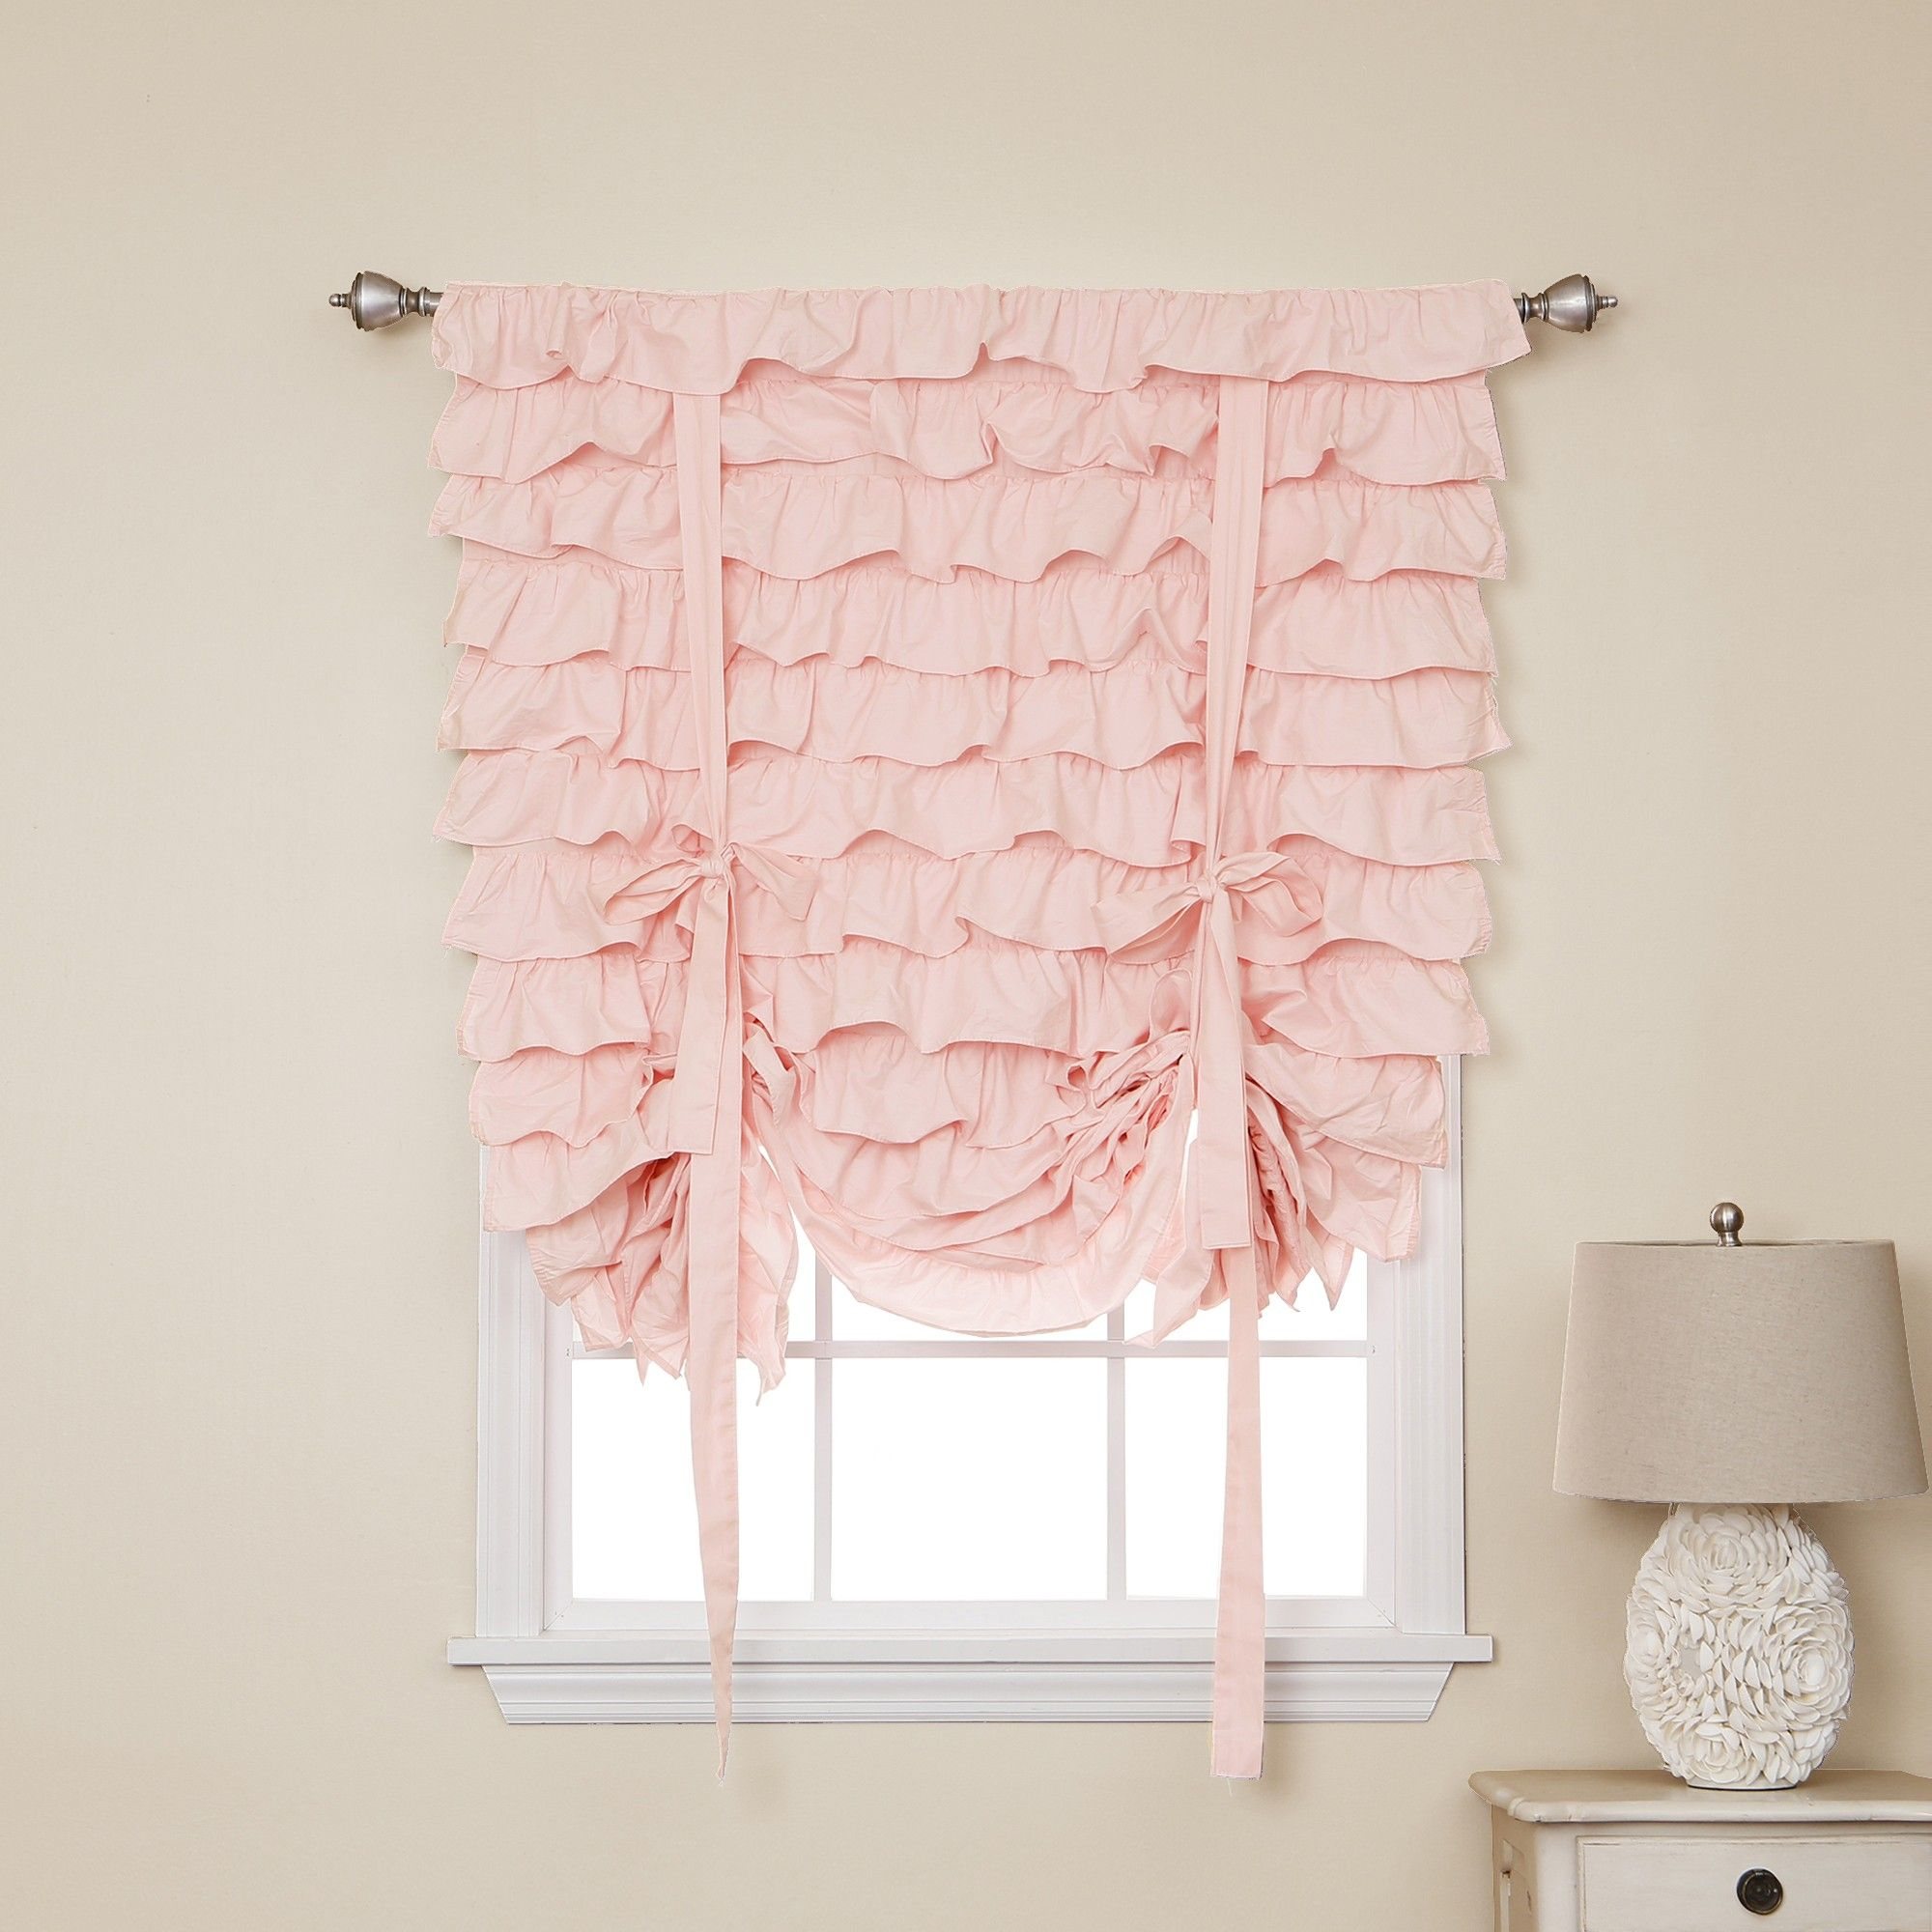 7 Homey Ruffle Curtains Blackout Ruffle Curtains Etsy